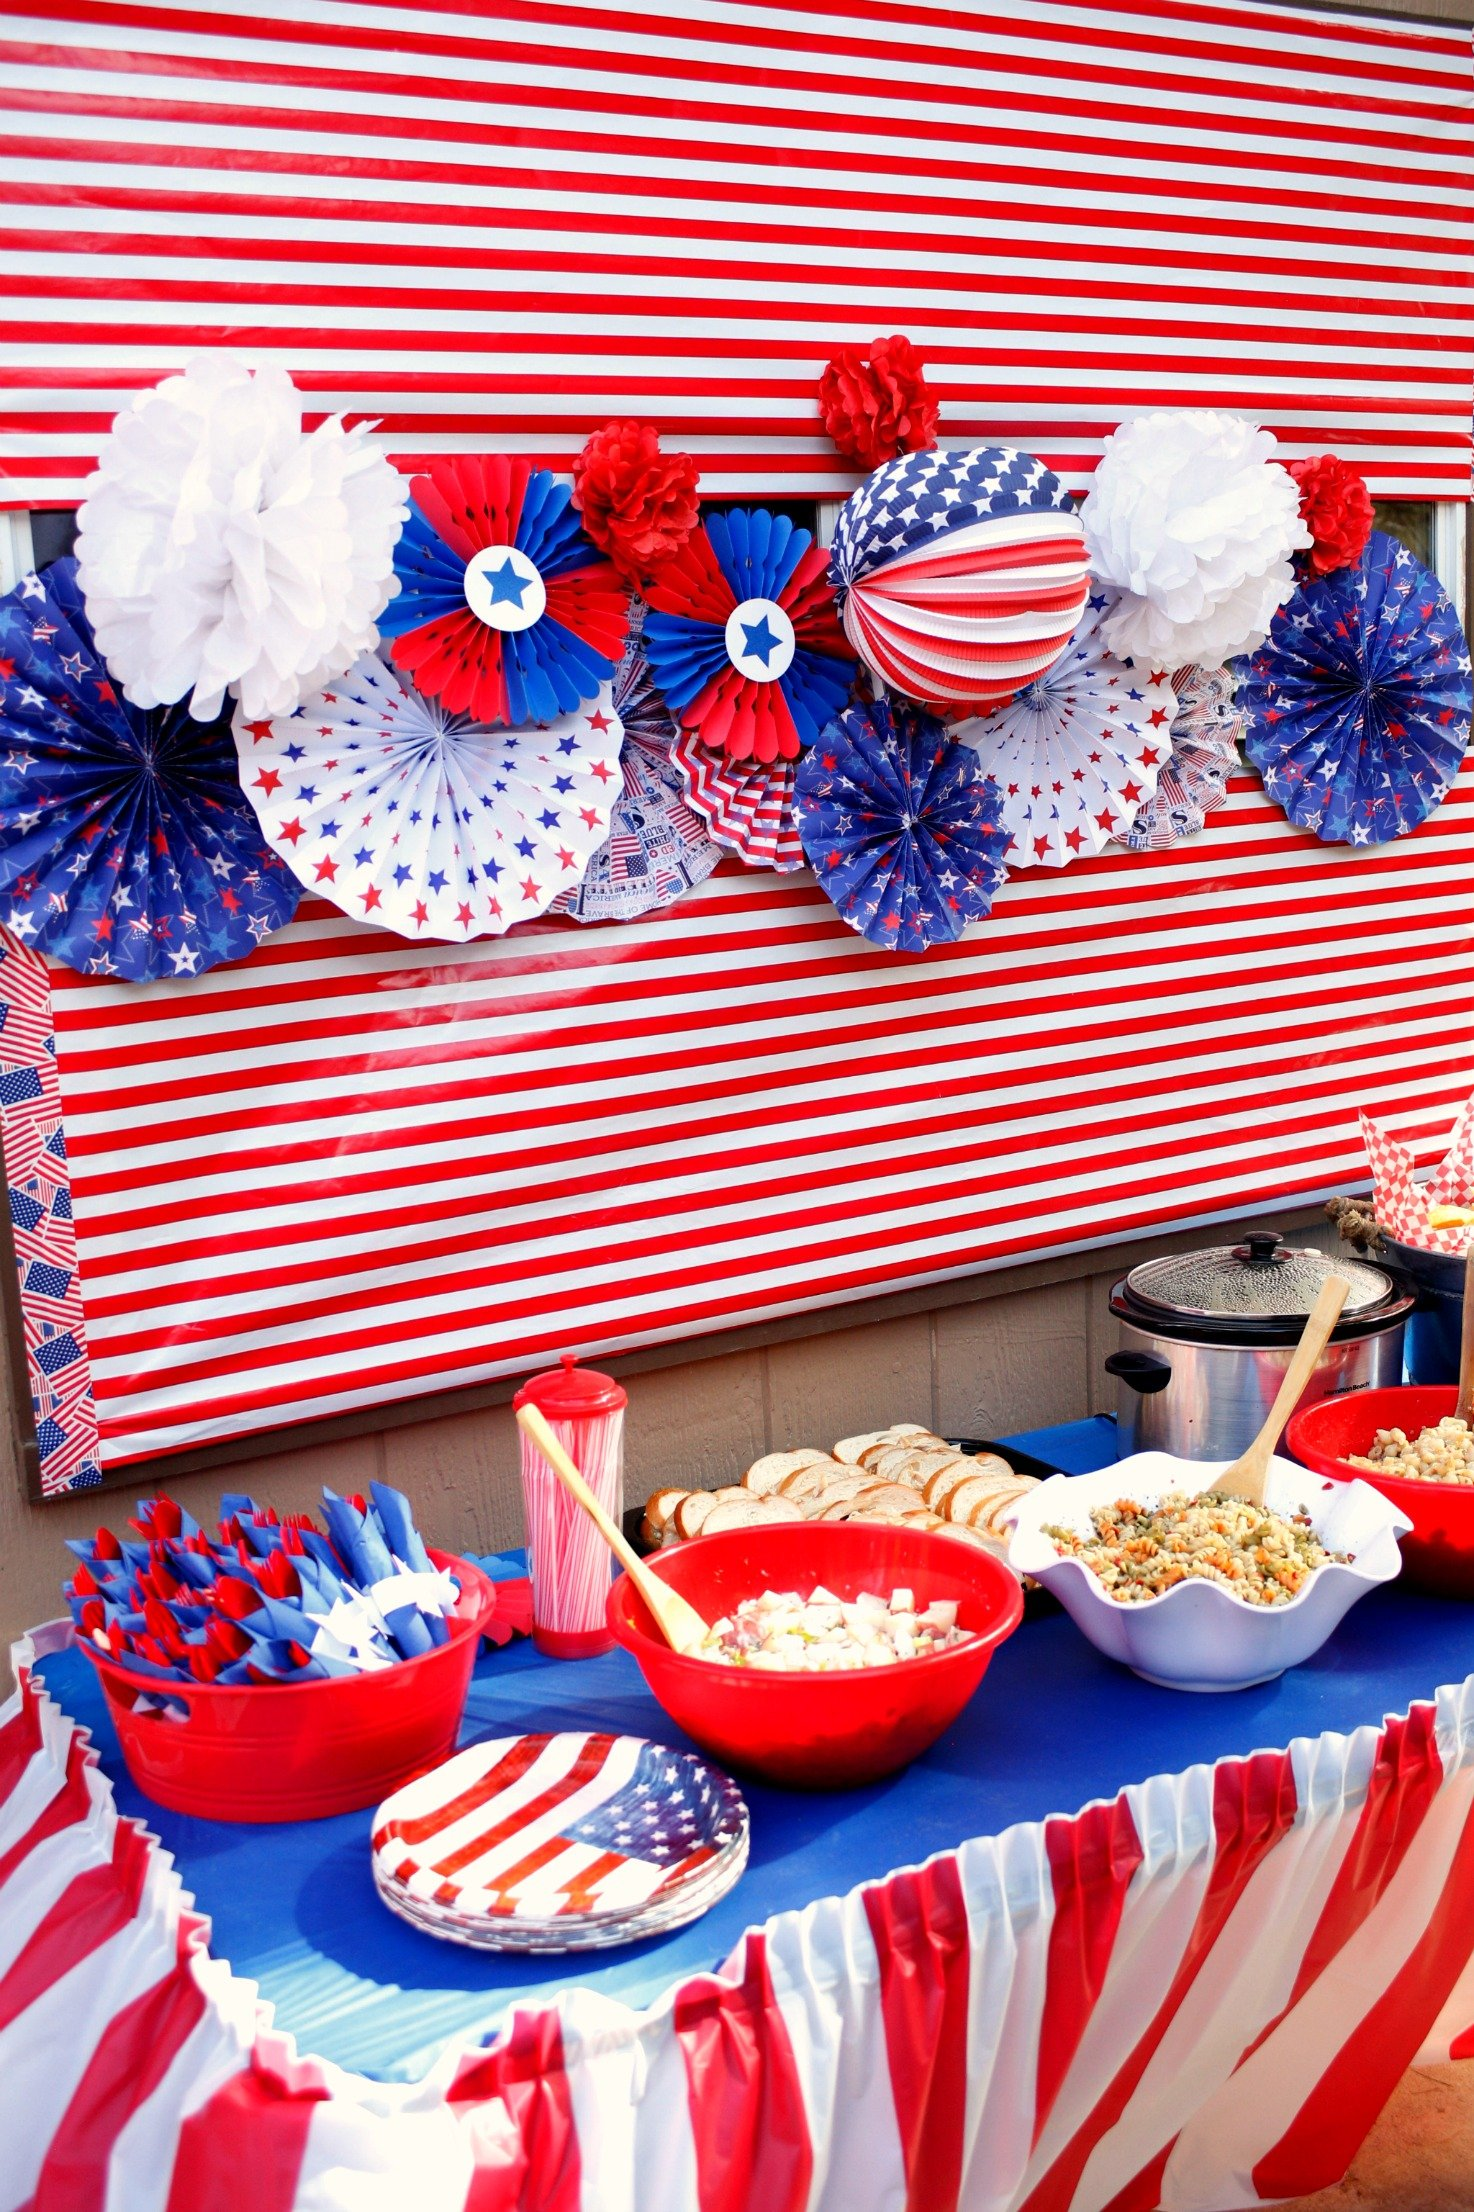 Set up a backdrop for your patriotic buffet with diy rosettes, Dollar Tree decorations and red and white wrapping paper.